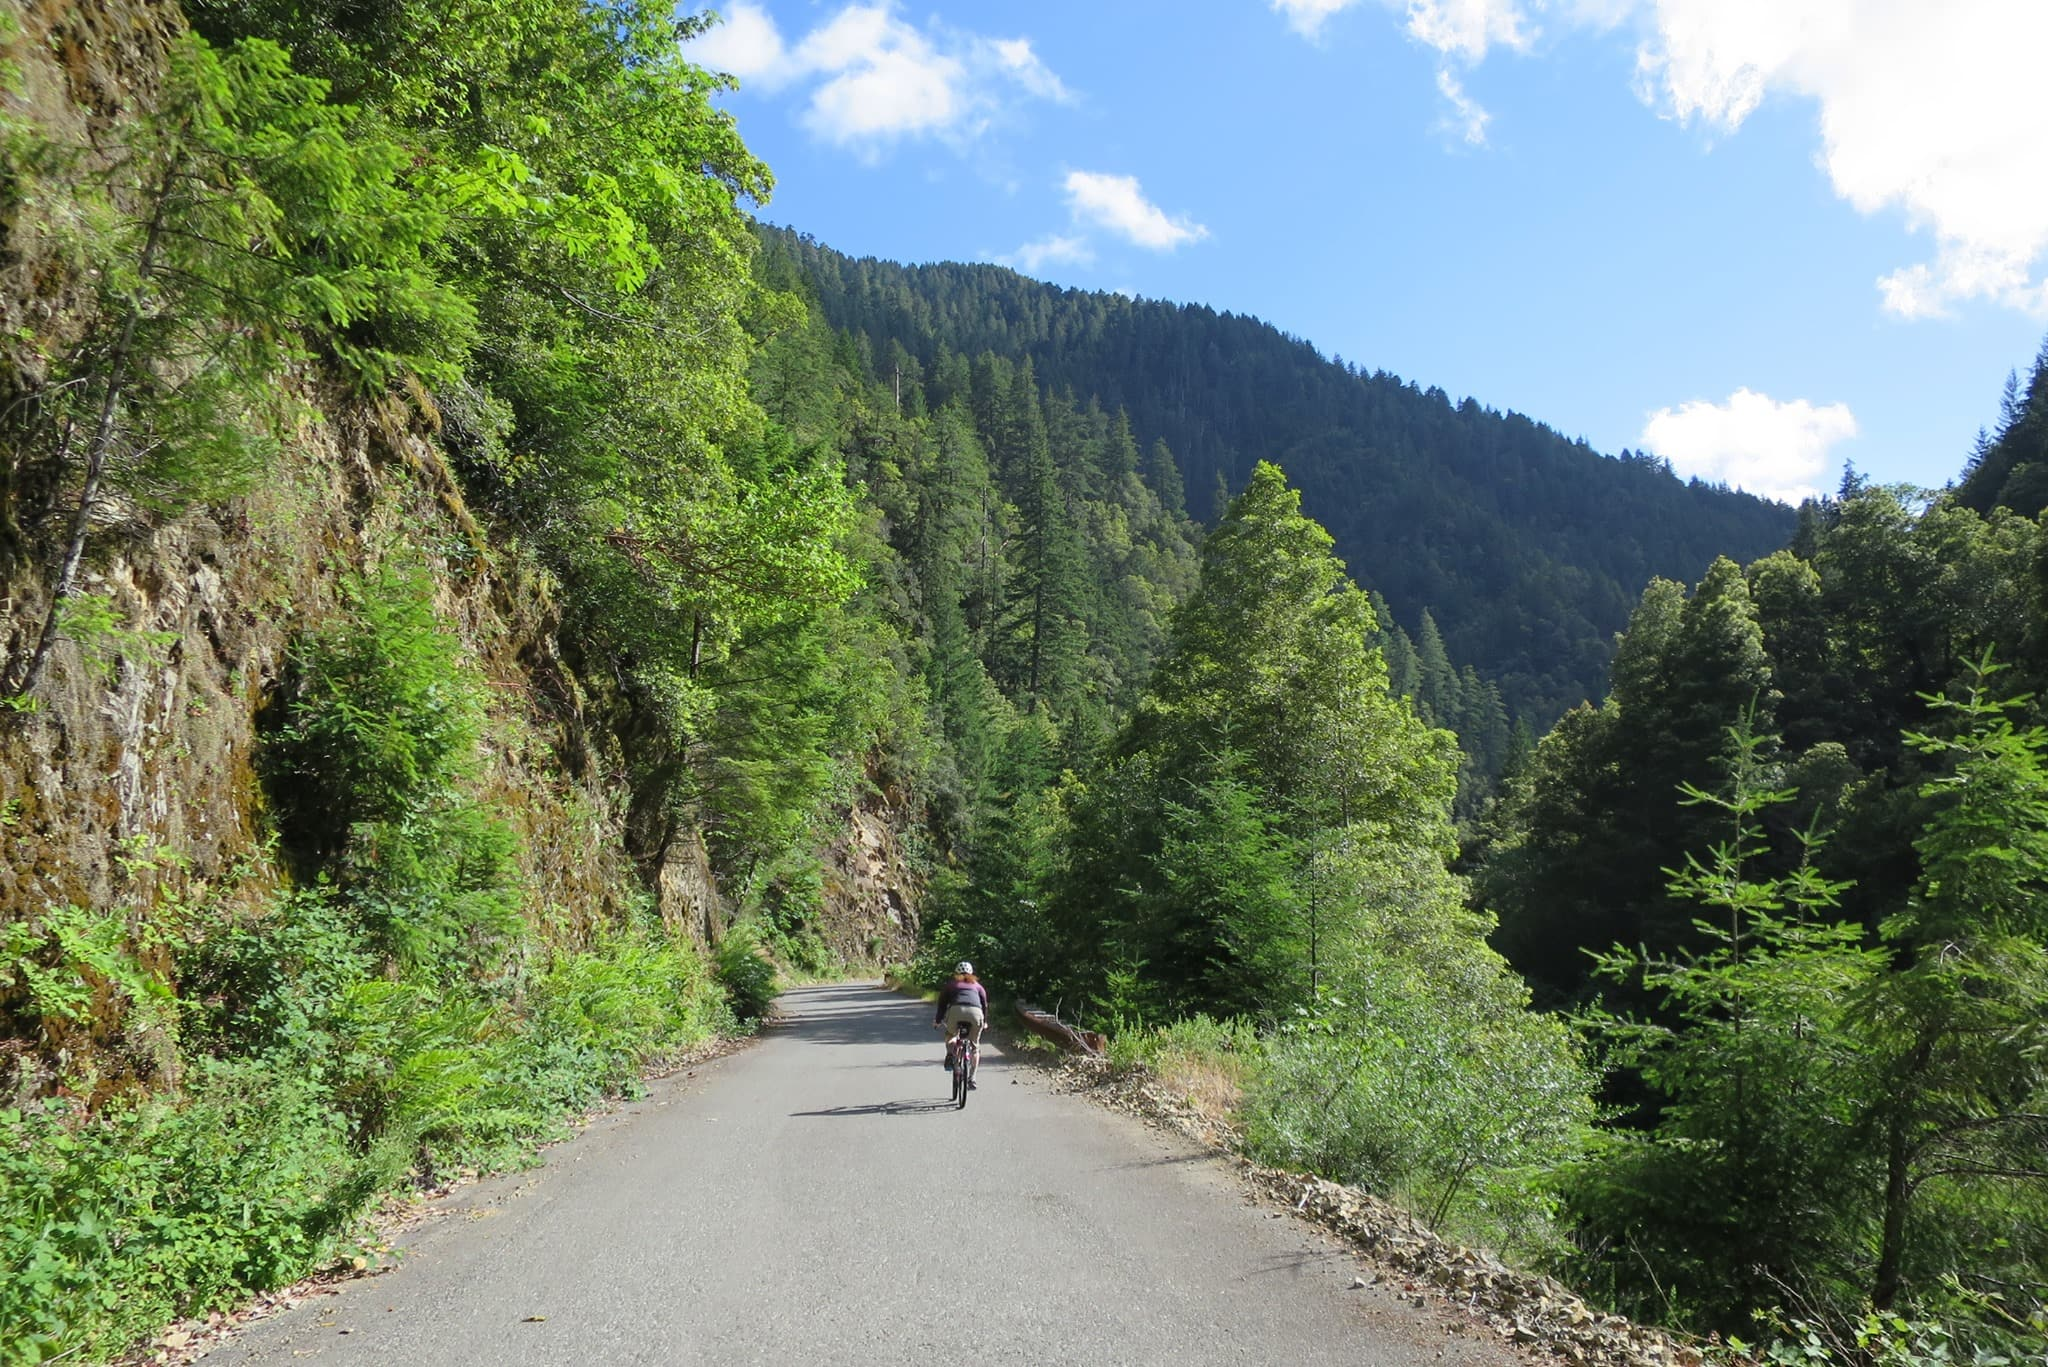 Cyclist riding the road next to the Elk River near the southern coast of Oregon.